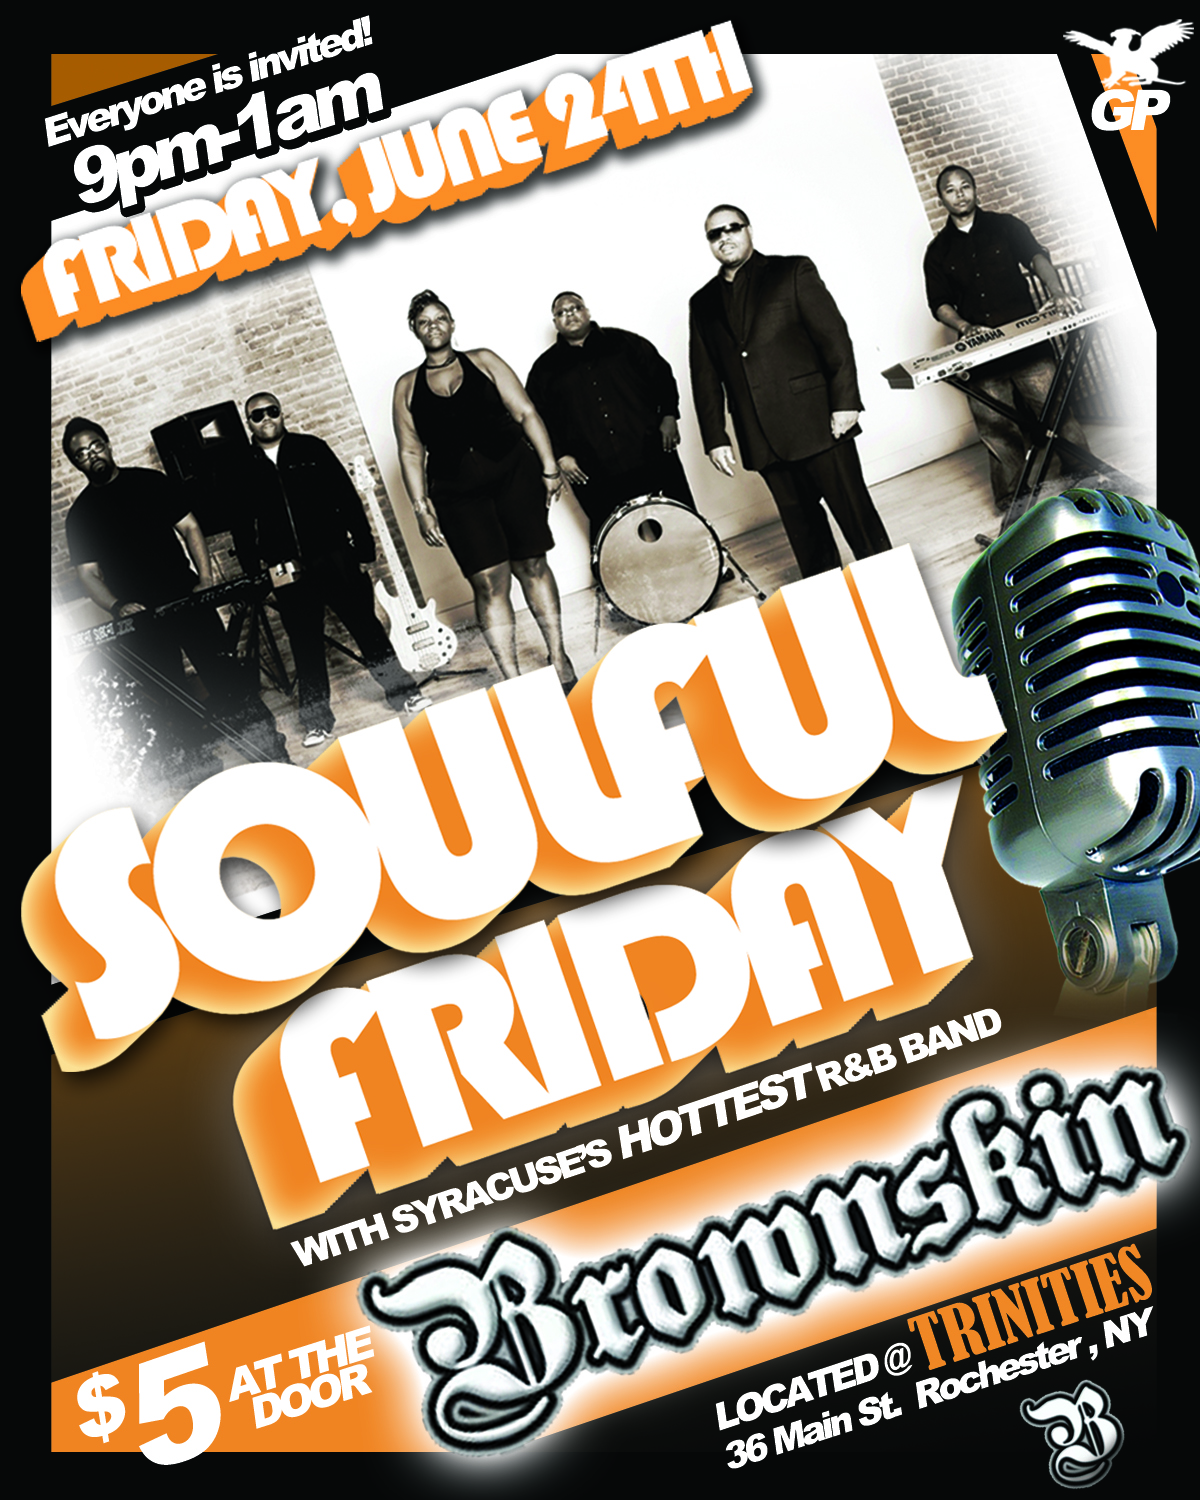 brownskin band soulful friday flyer – Griffin Productions